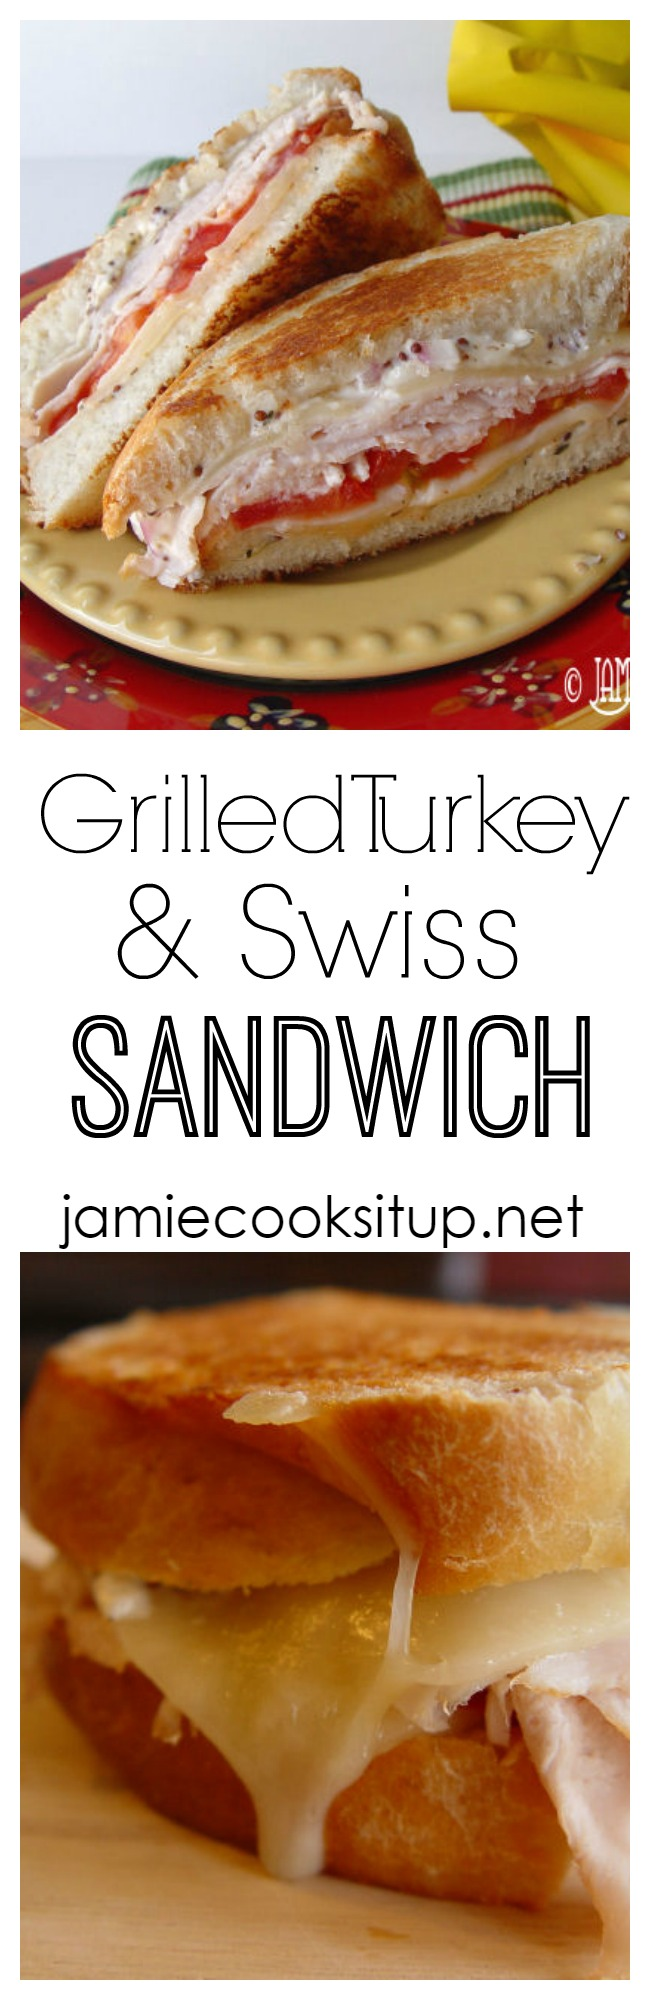 Grilled Turkey and Swiss Sandwich from Jamie Cooks It Up!